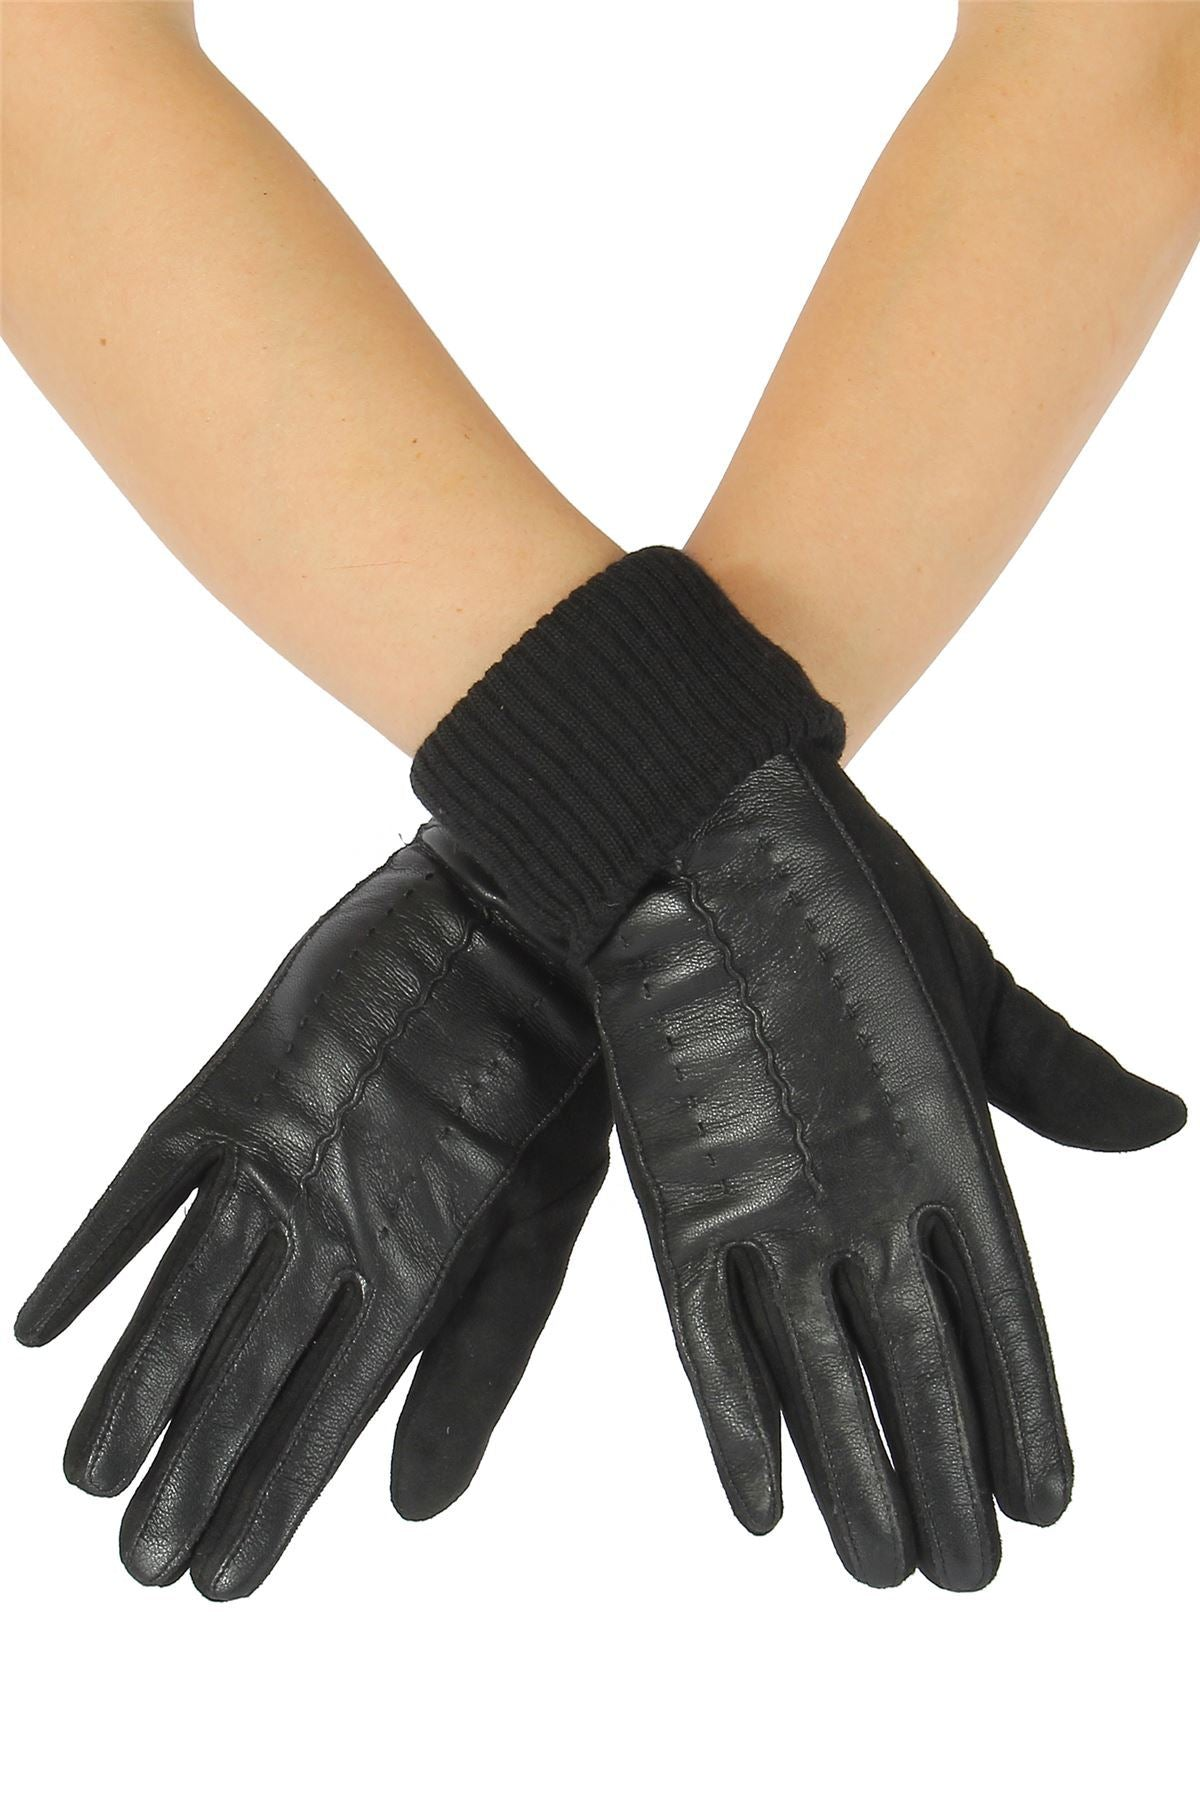 X Faux Leather _ Suede Style Gloves- BLACK Leather Gloves